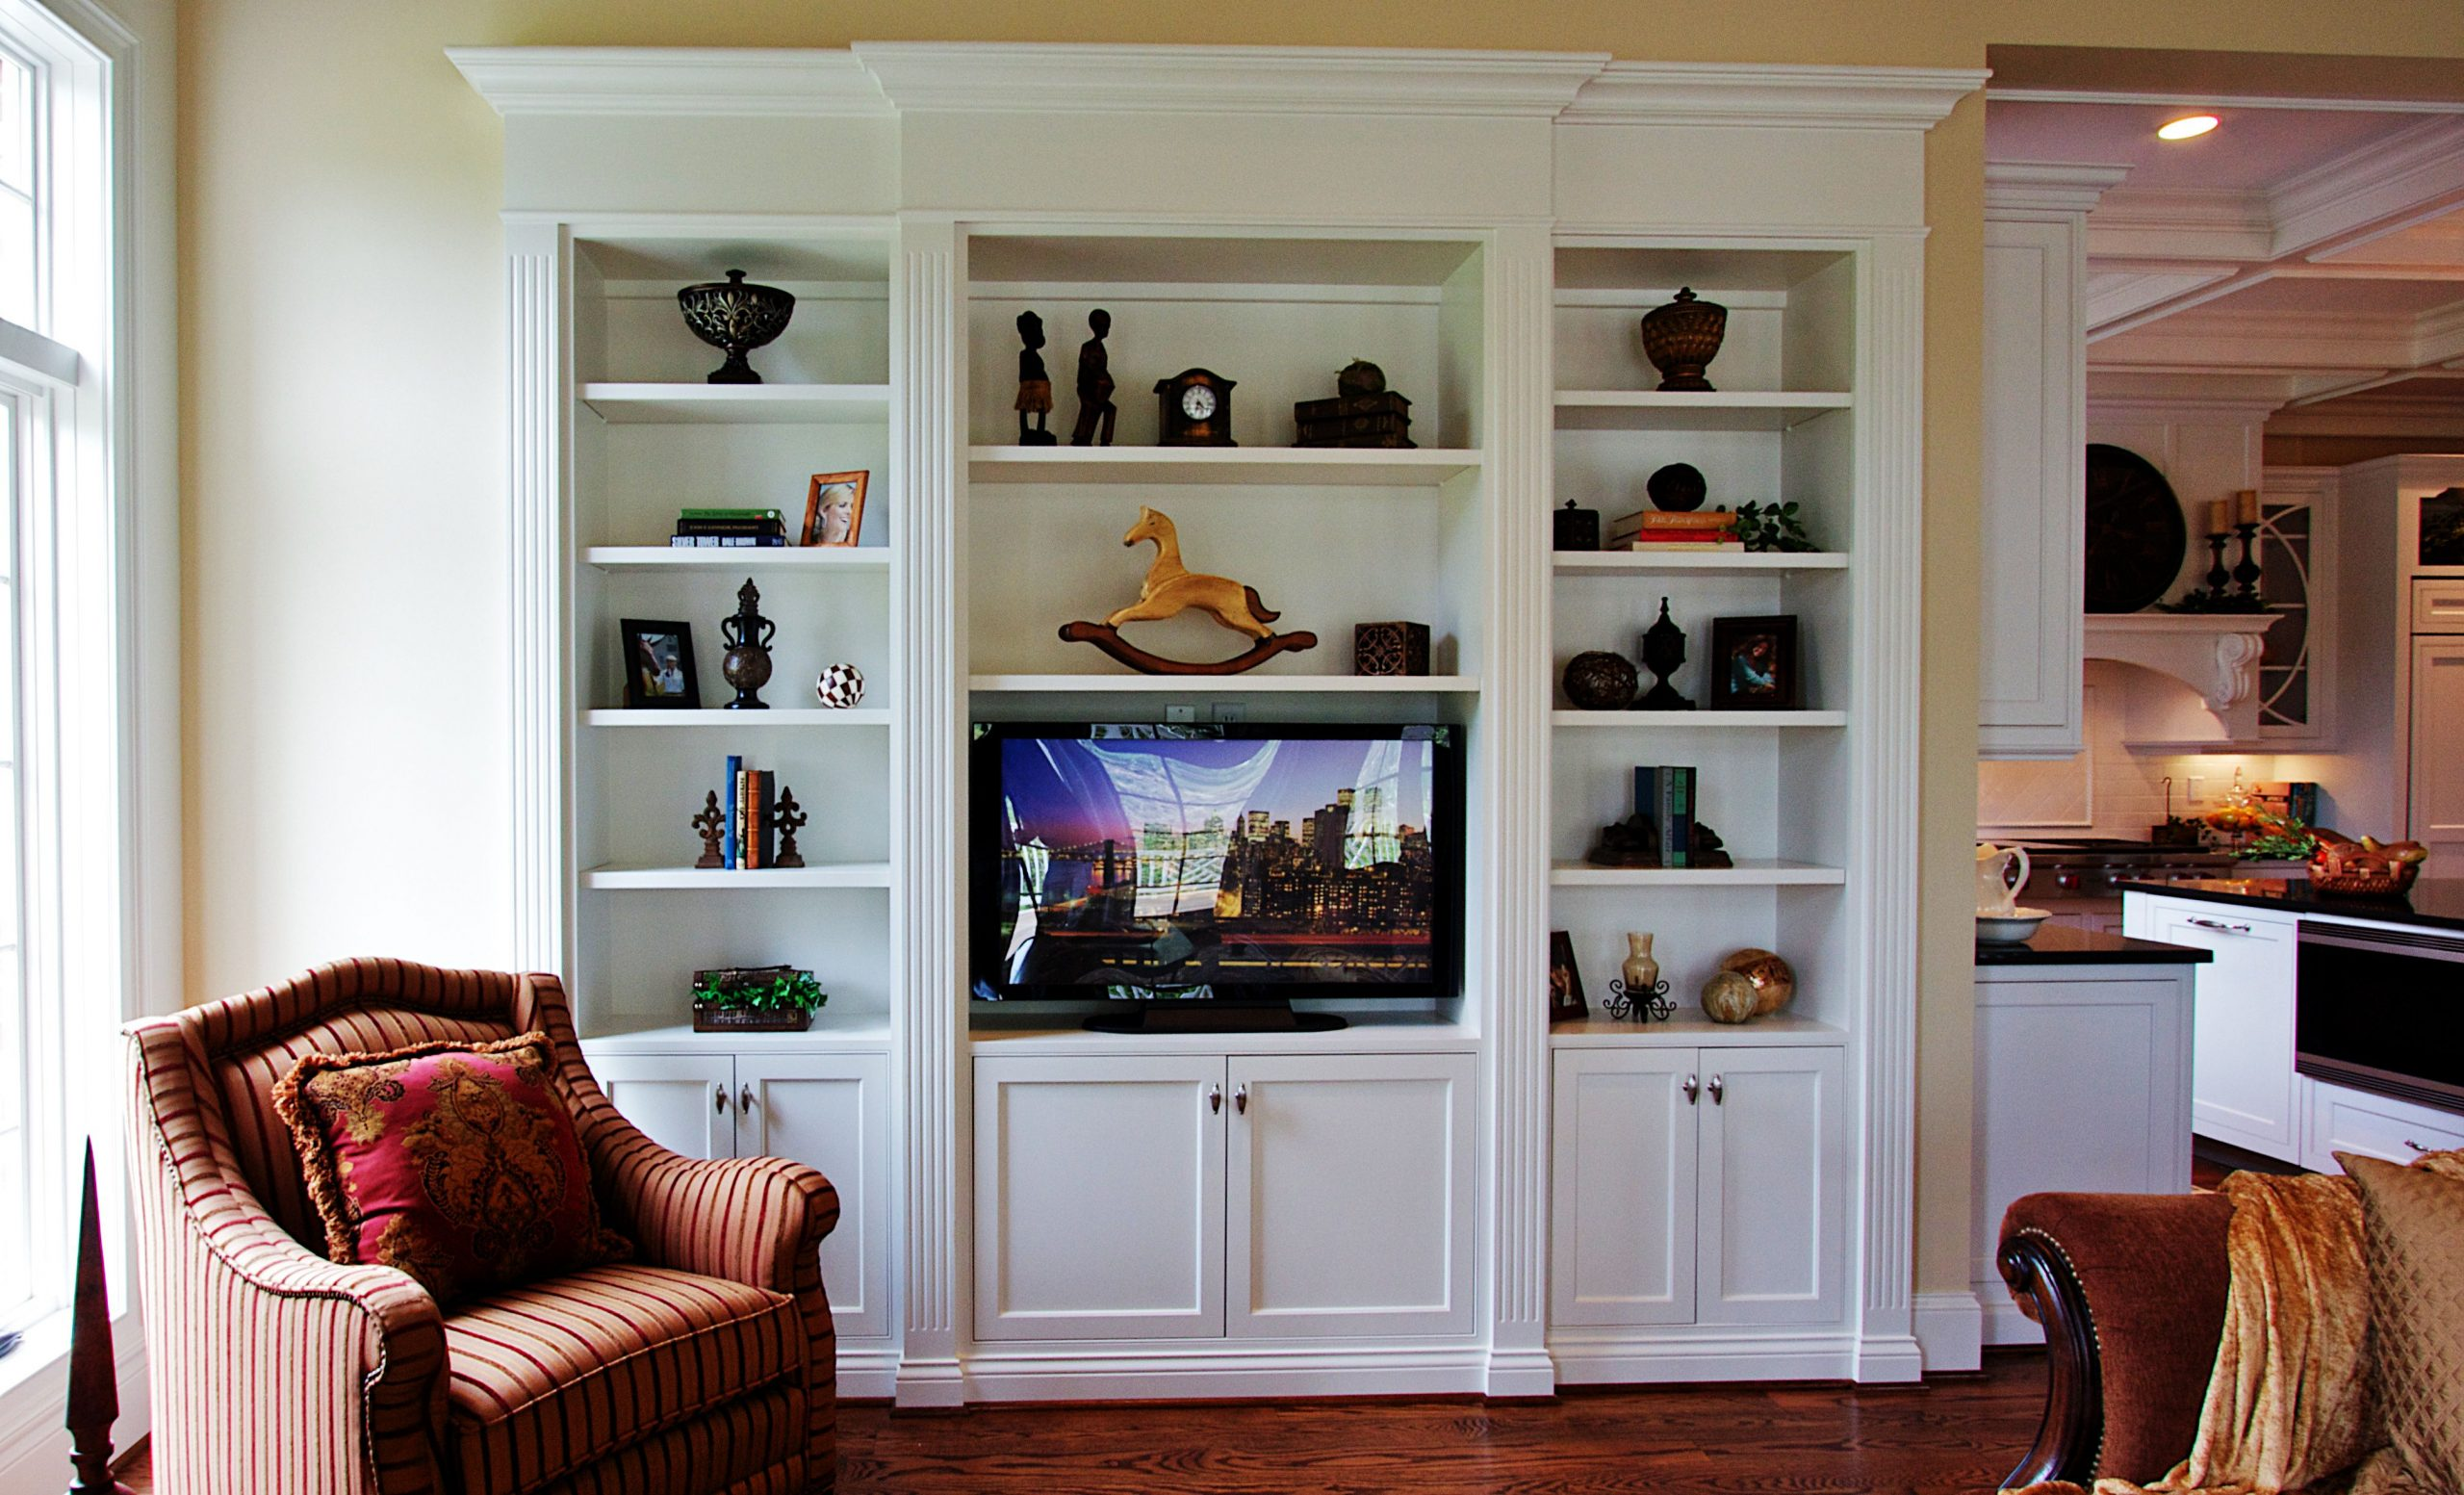 Traditional Built In Bookcase With Tv 40222440 Pixels with proportions 4022 X 2440